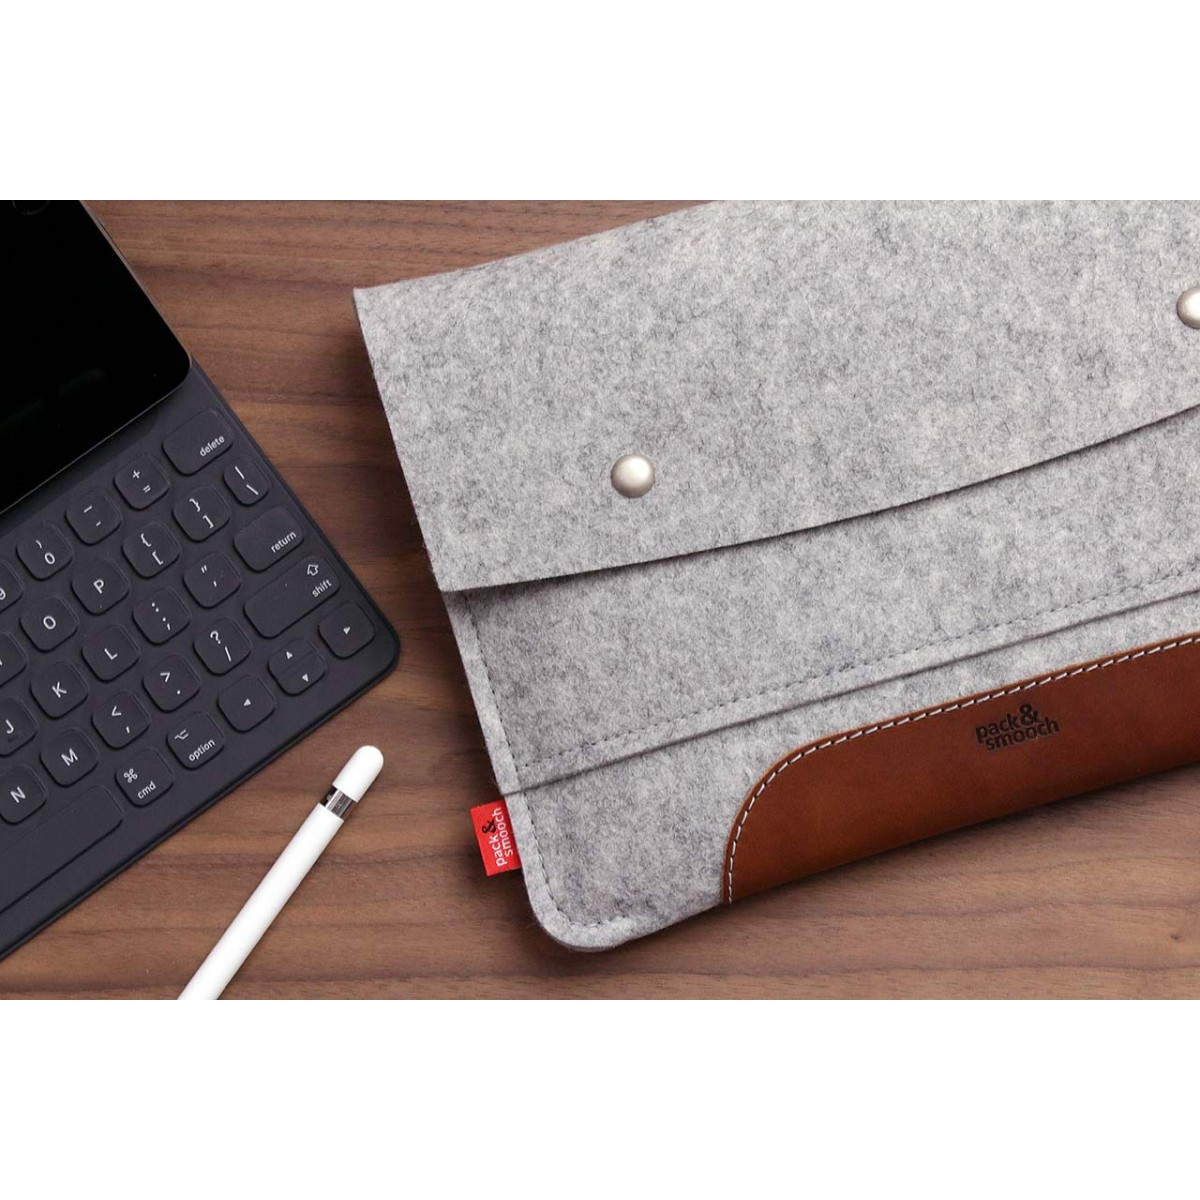 "Pack & Smooch iPad Pro 12.9"" (Late 2018) Hülle, Sleeve HAMPSHIRE 100% Merino Wollfilz, Naturlede"